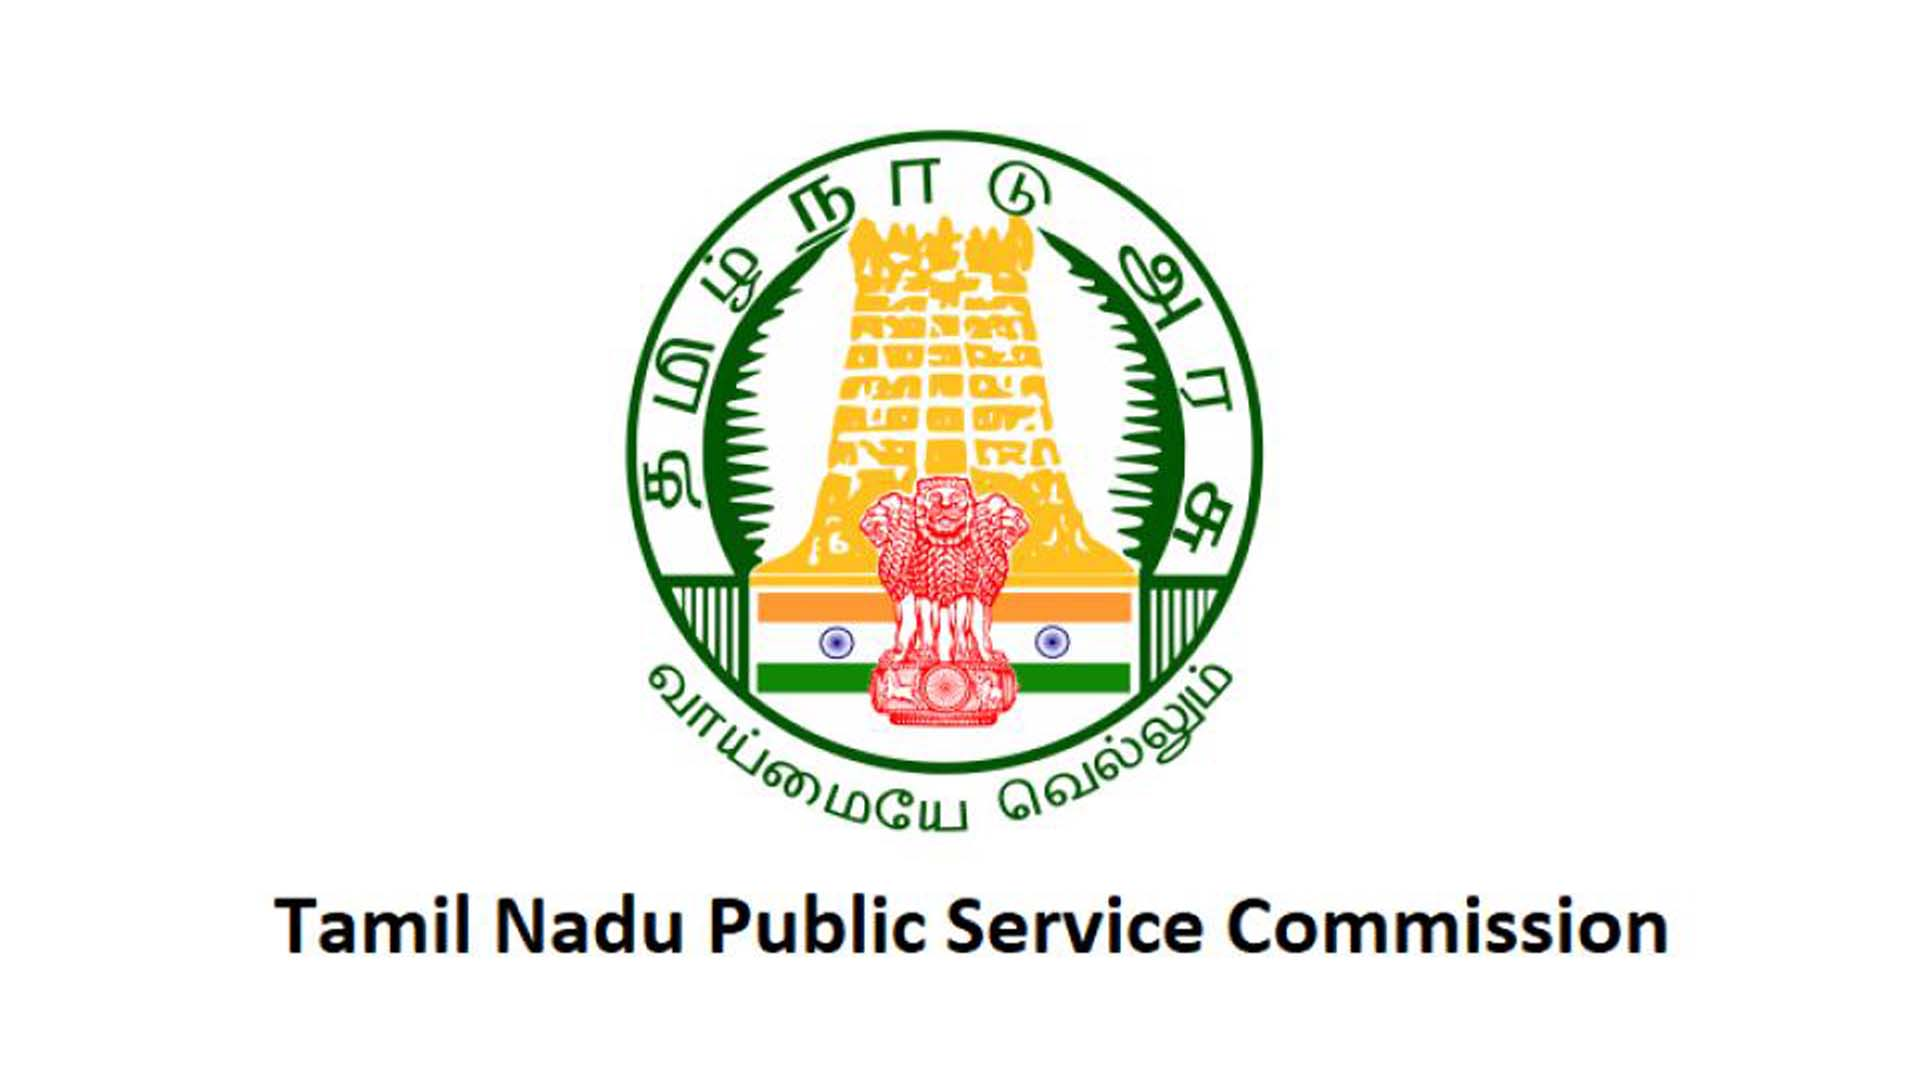 Tamil Nadu Public Service Commission Recruitment 2019 : 6 Openings for Sub-Inspector Fisheries Department